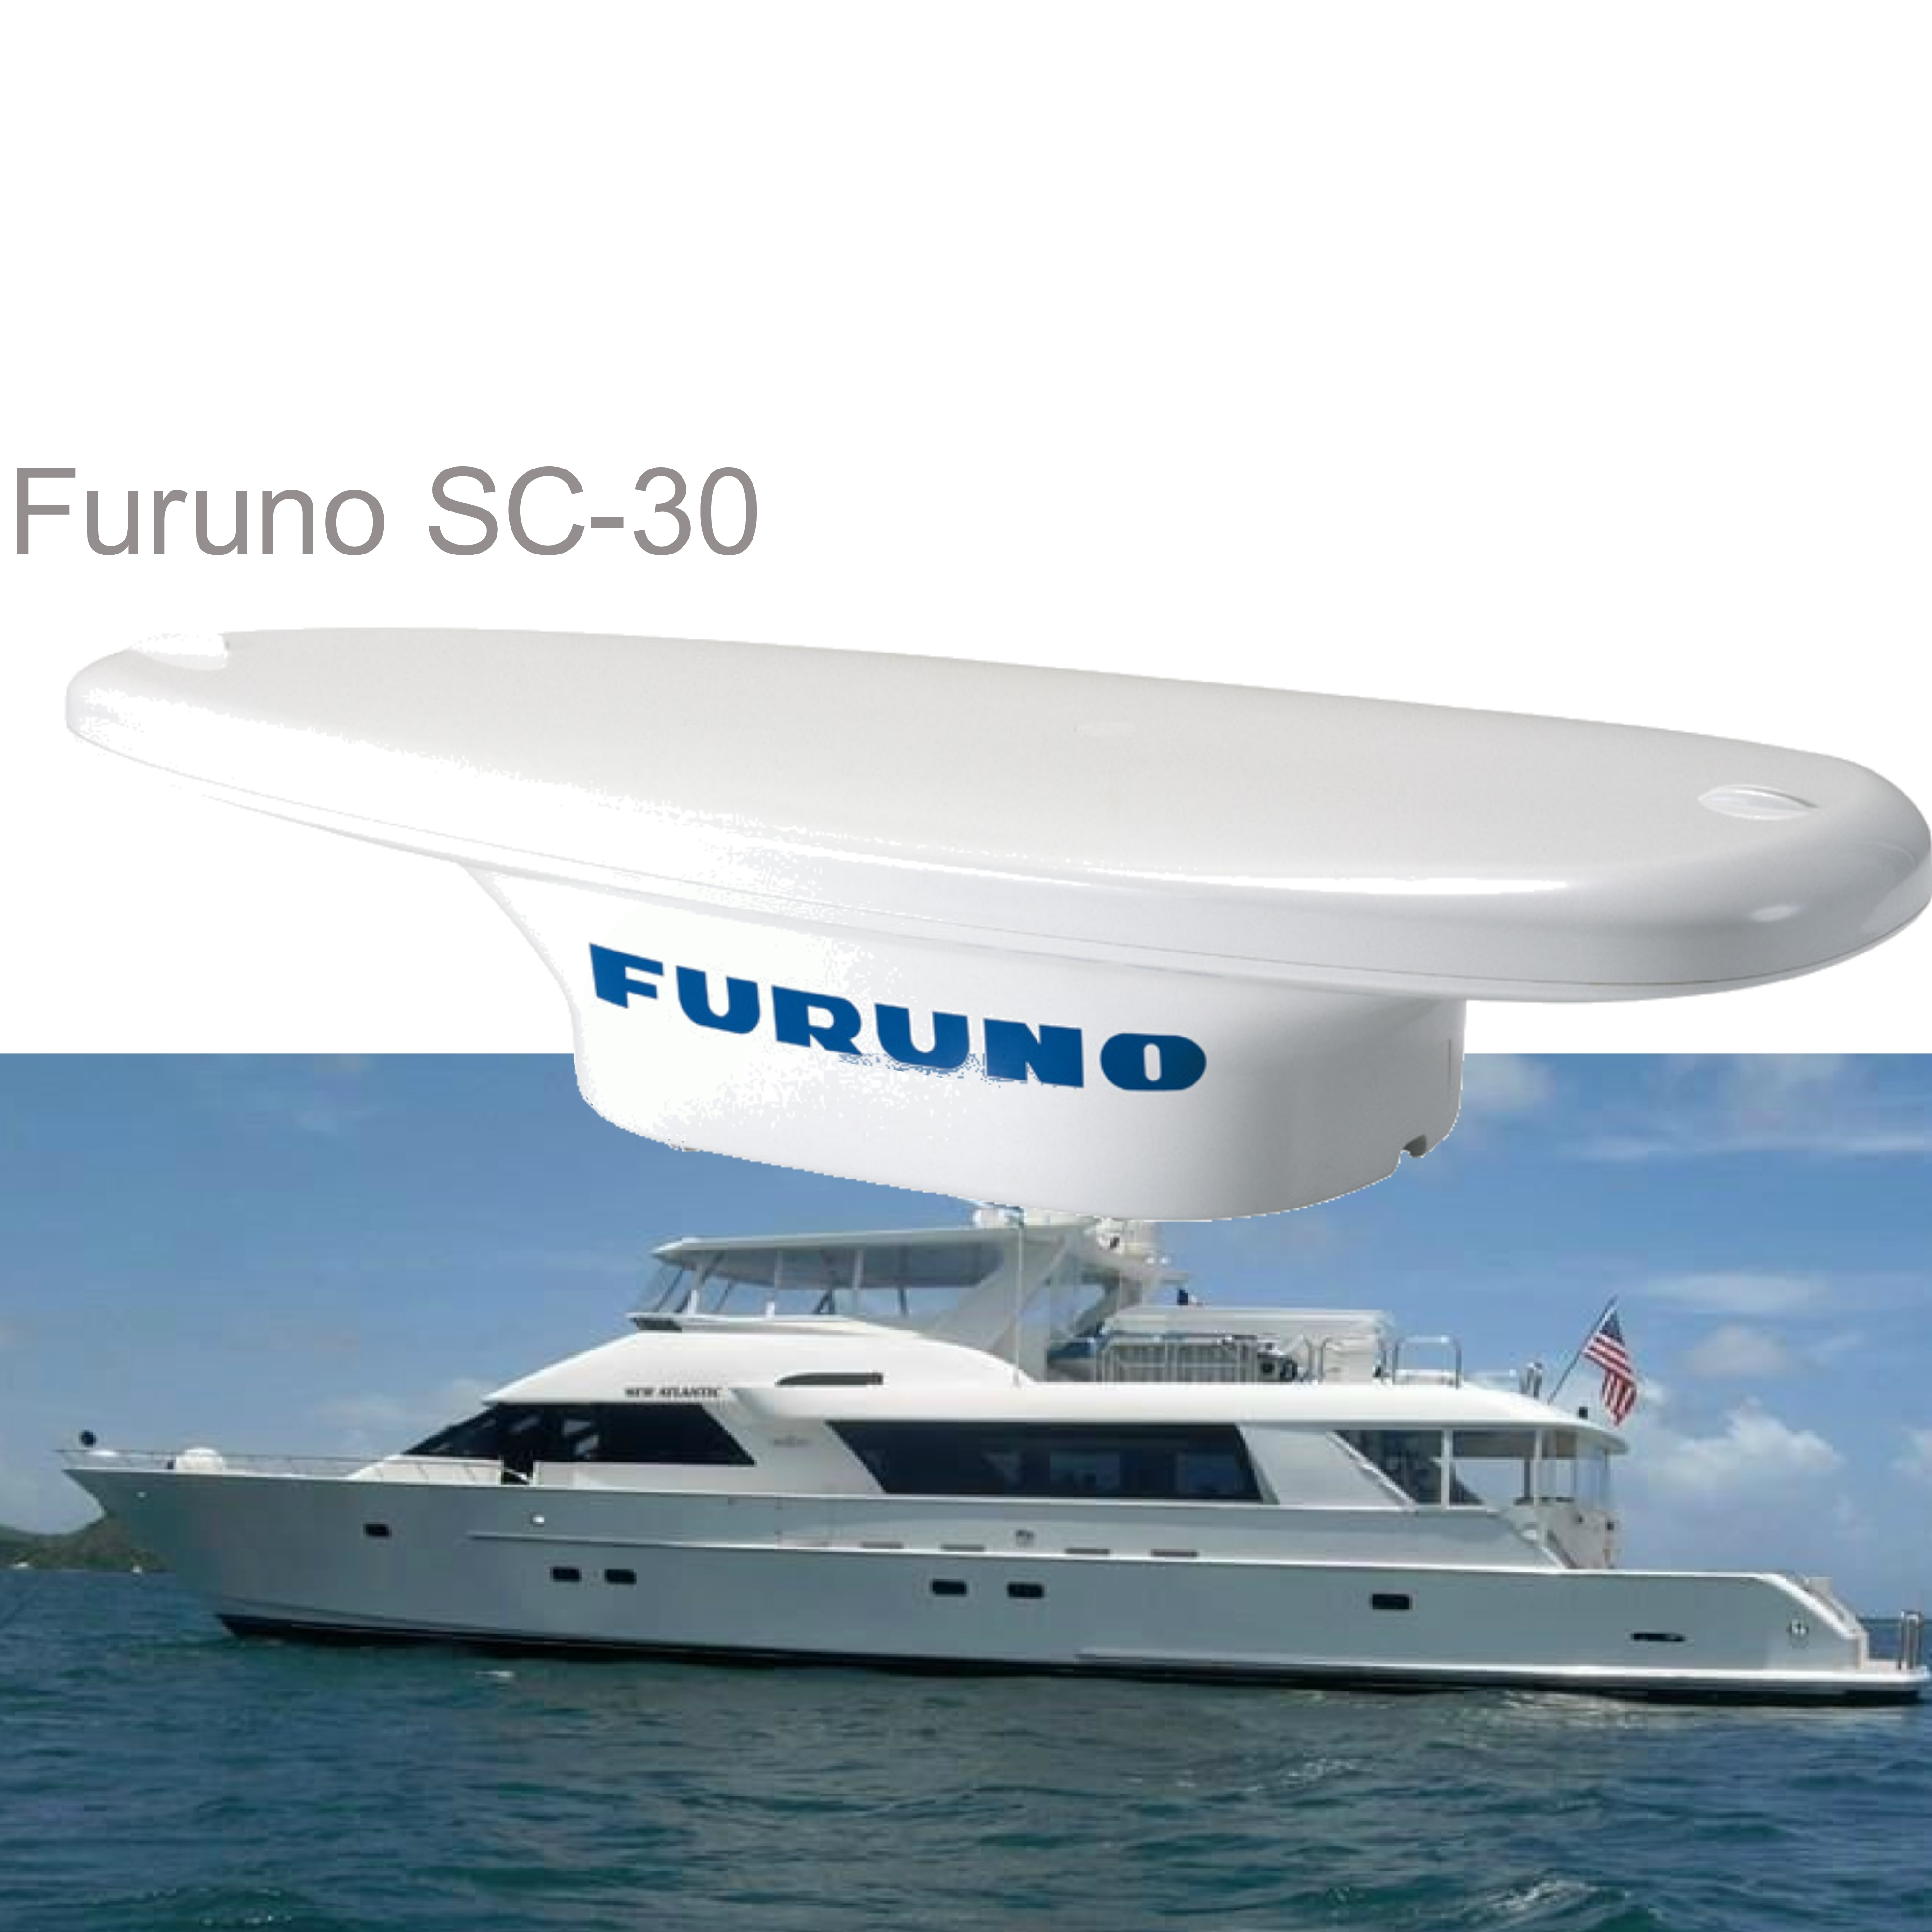 Furuno-SC30 Satellite/GPS Compass?Dual Receiver CAN Bus/NMEA2000|Highly  Accurate